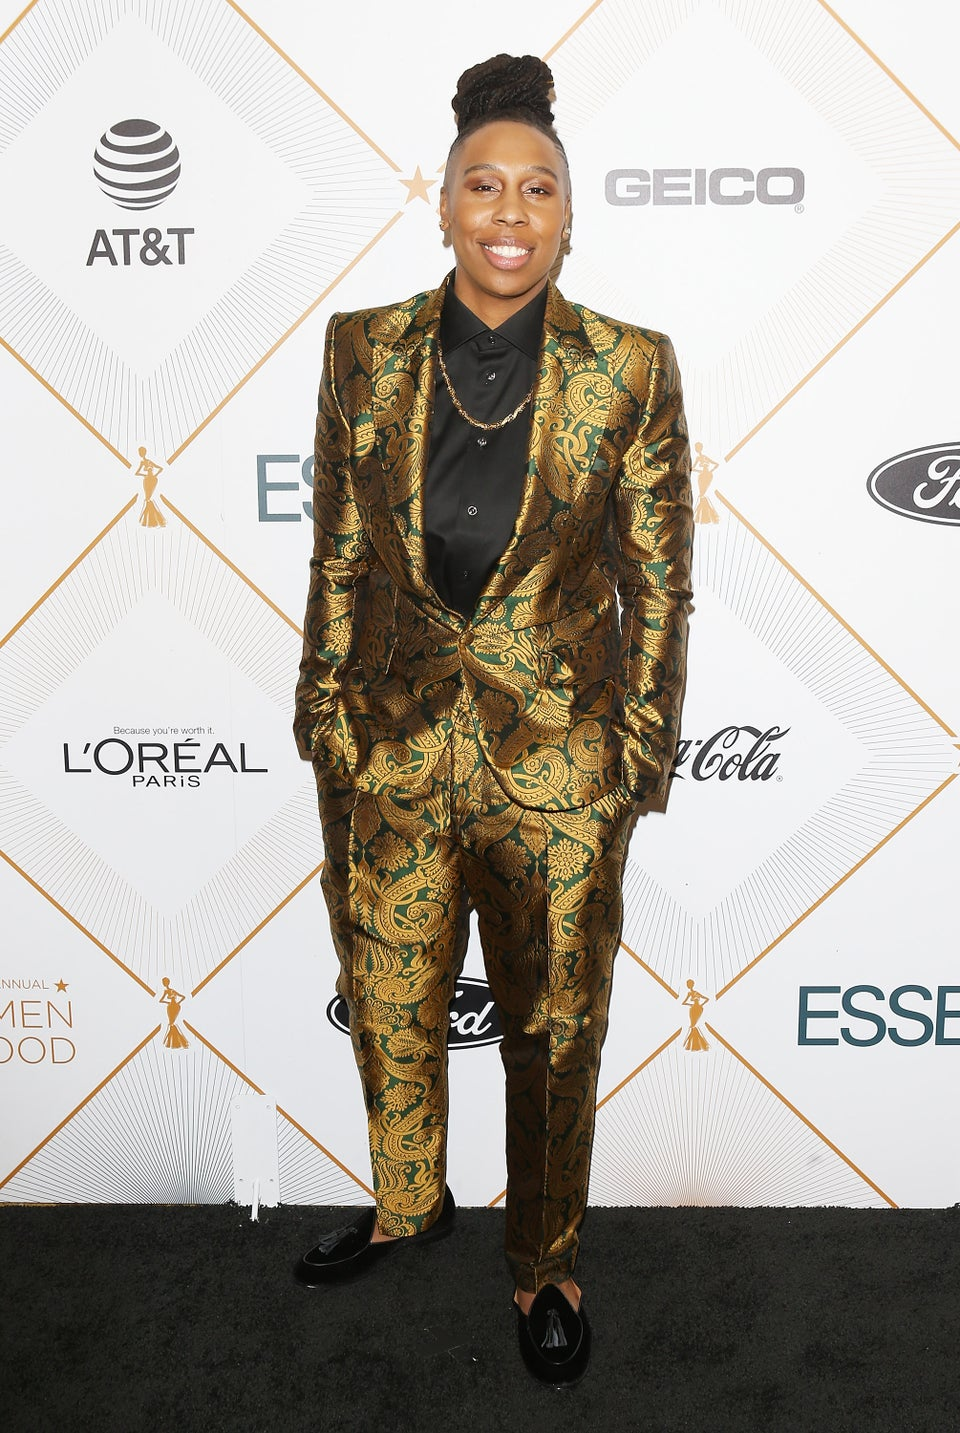 Lena Waithe Says She Hopes To Be A 'Shining Light For All The Little Lesbians In Training' In Empowering BWIH Speech